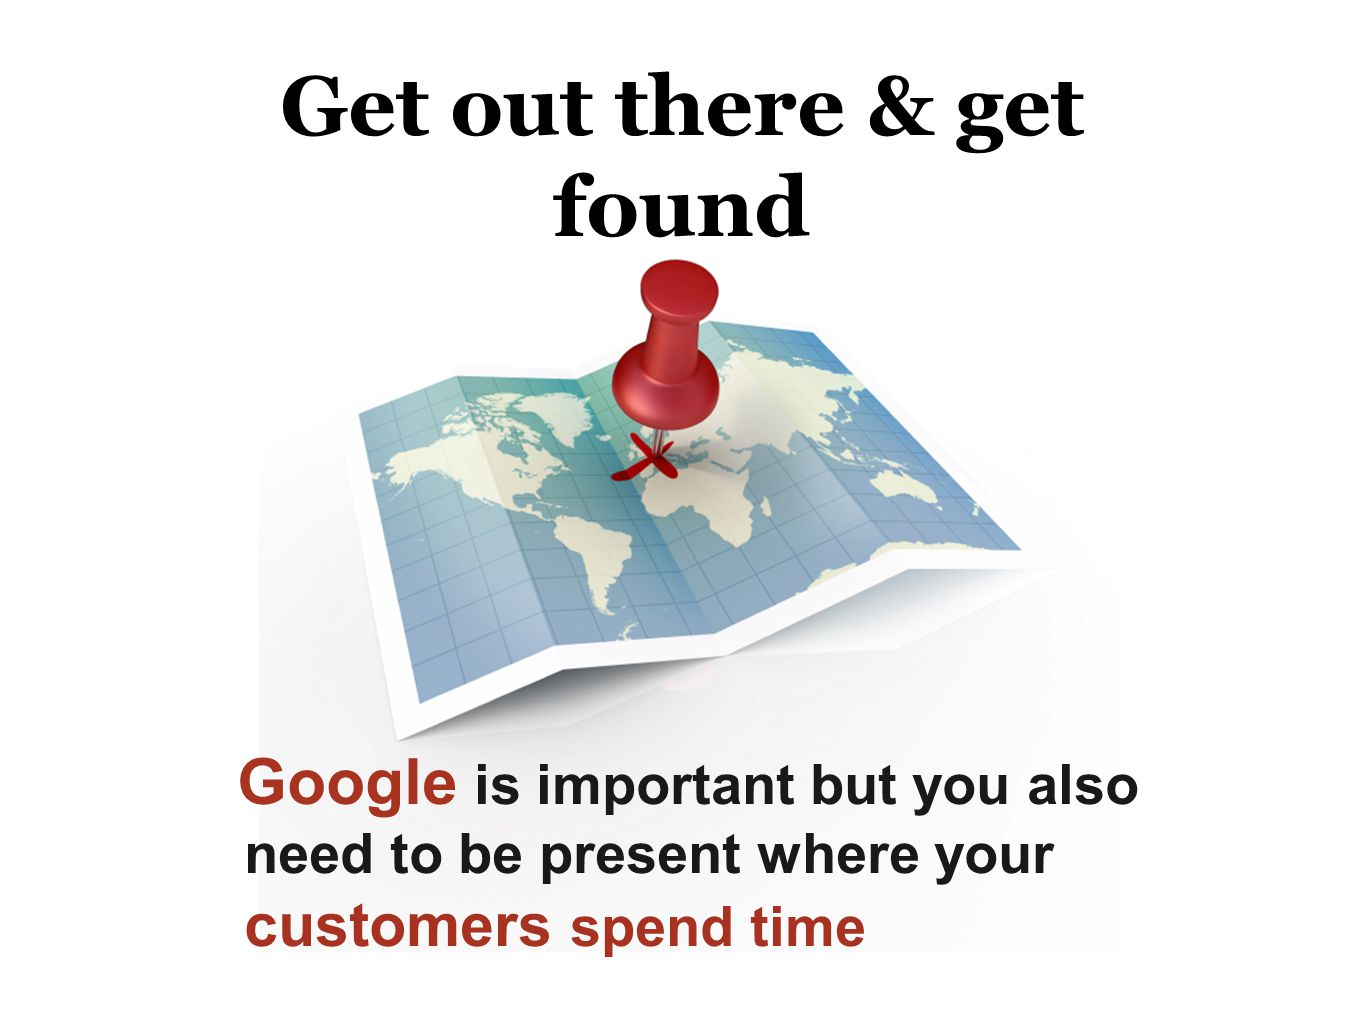 Get out there & get found Google is important but you also need to be present where your customers spend time